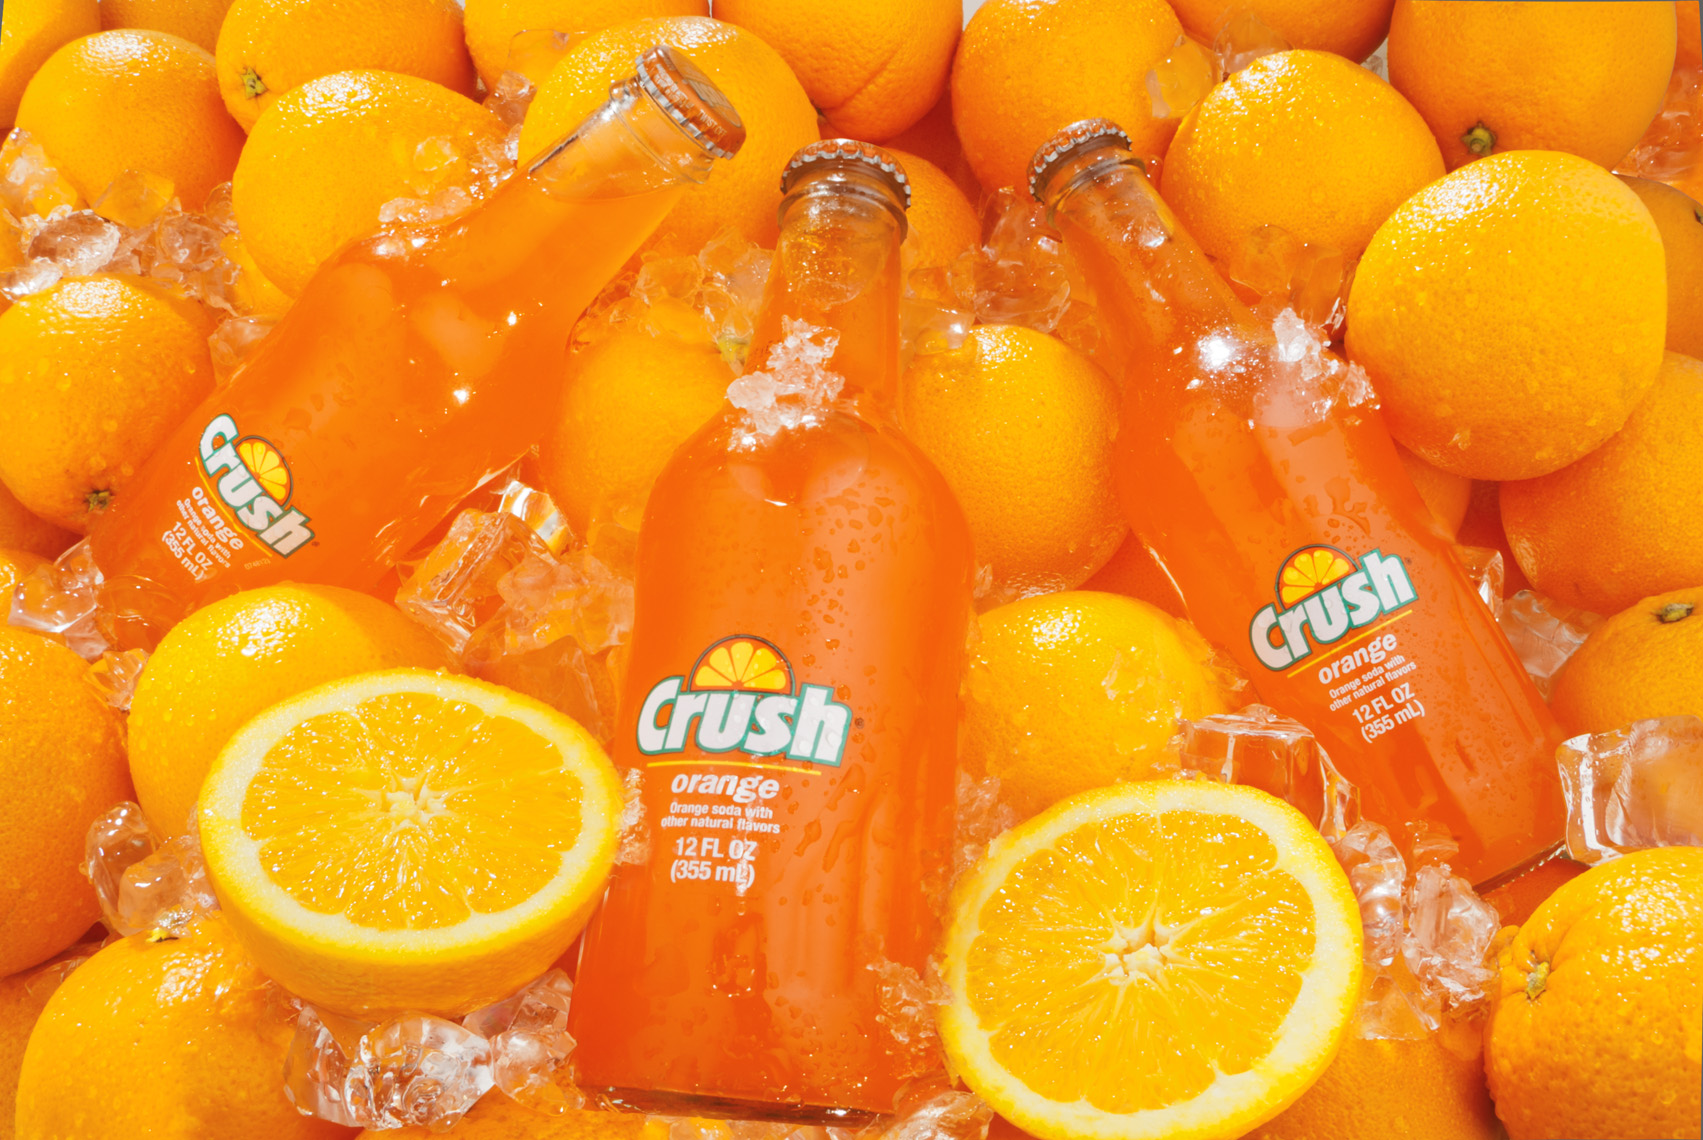 Crush_Soda_On_Oranges